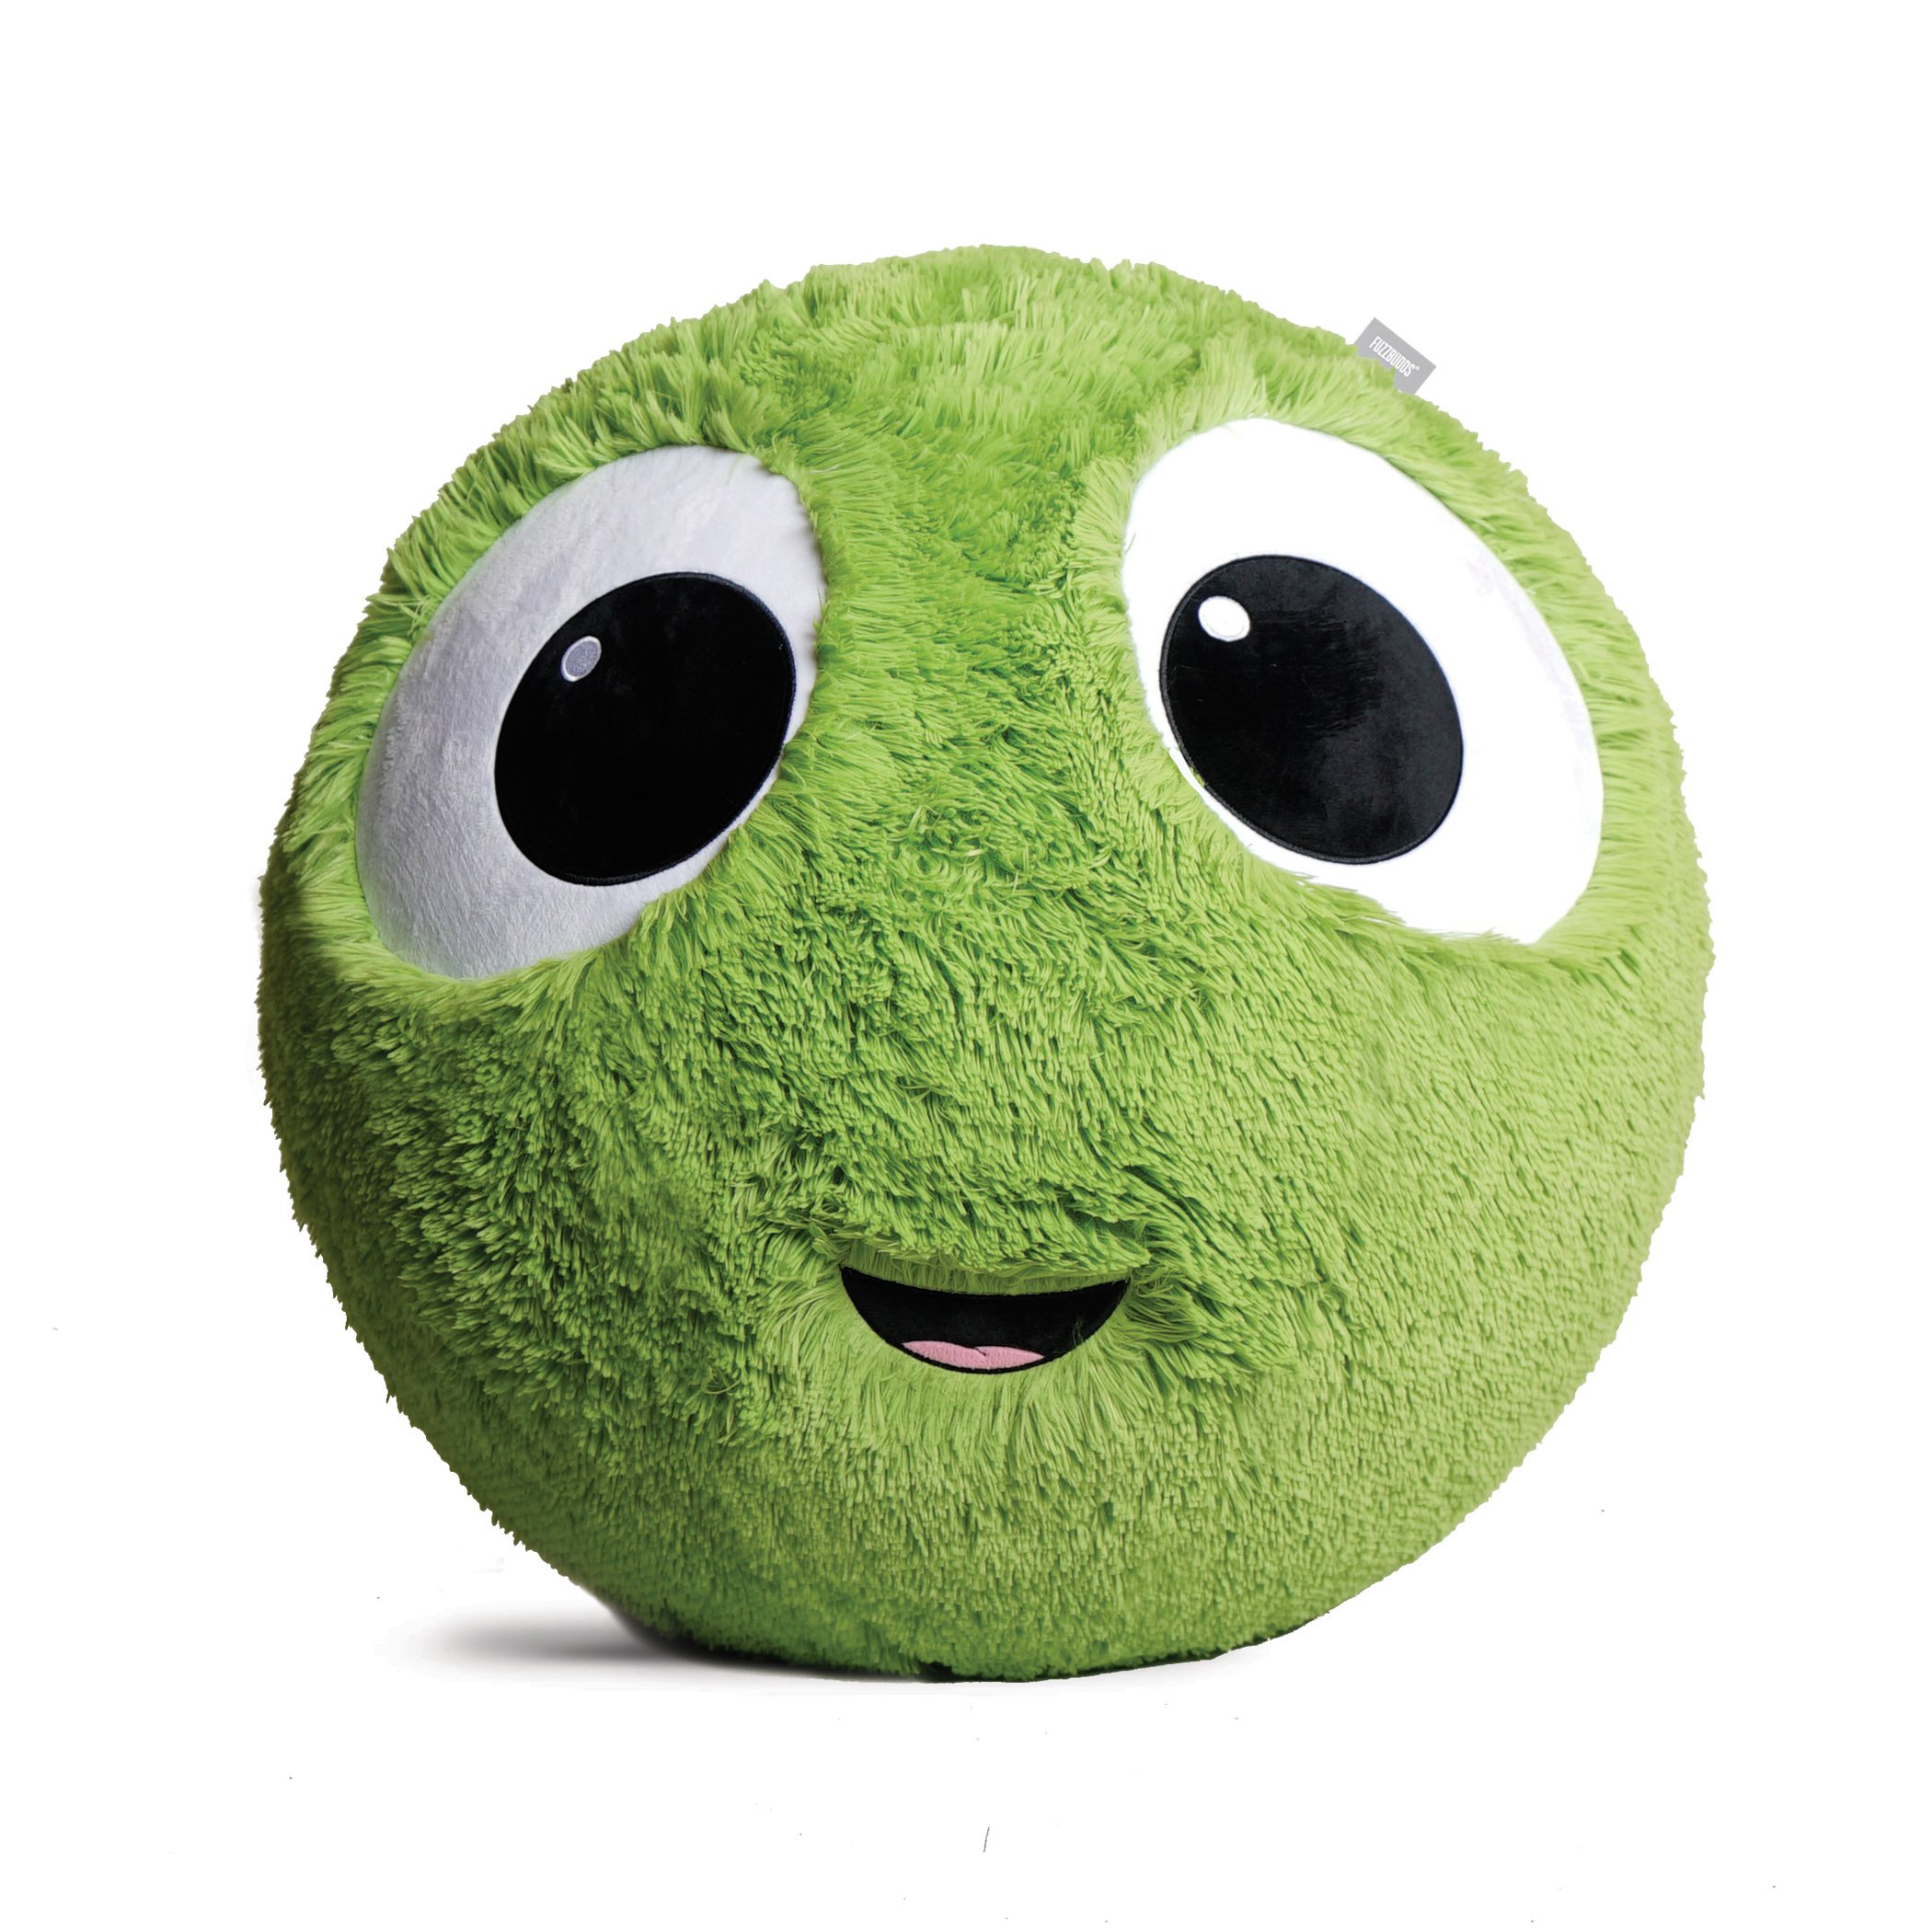 Fuzzbudds, Bouncy Balls, Ideal for Ball Pits, Balls for Toddlers, Boys, Girls, Kids Toys, Yard Games, Kids Stress Ball, Fuzzy Balls, Beach Toys, Machine Washable Fuzzy Cover and Pump Green Large 65cm